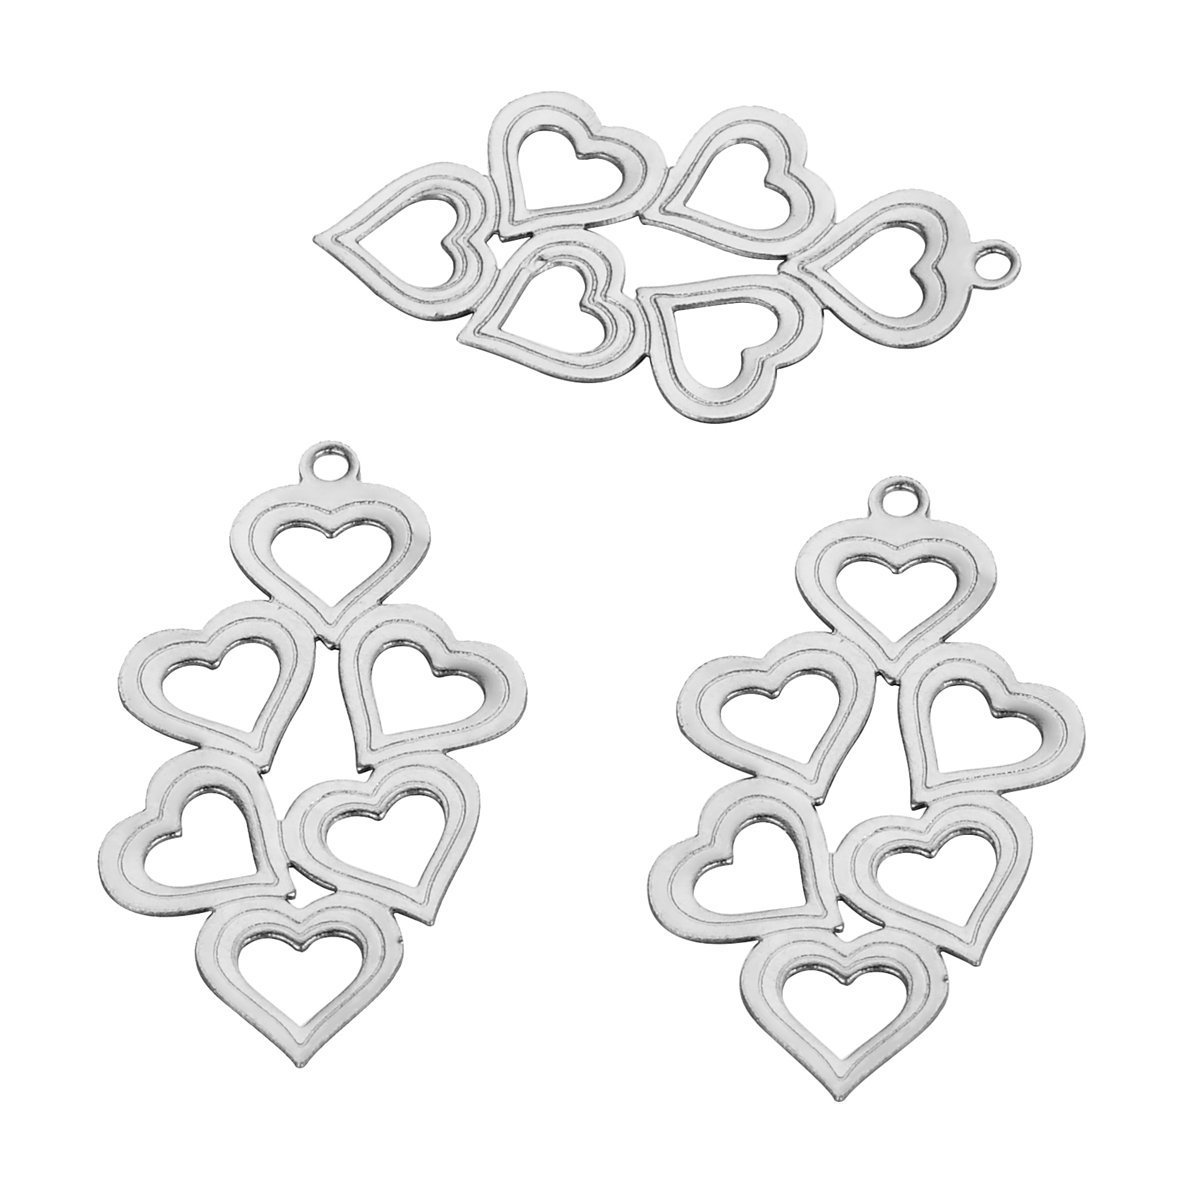 10PCS Stainless Steel Hollow Heart Charm Pendants For Jewellery Making DIY Crafting 29mmx16mm